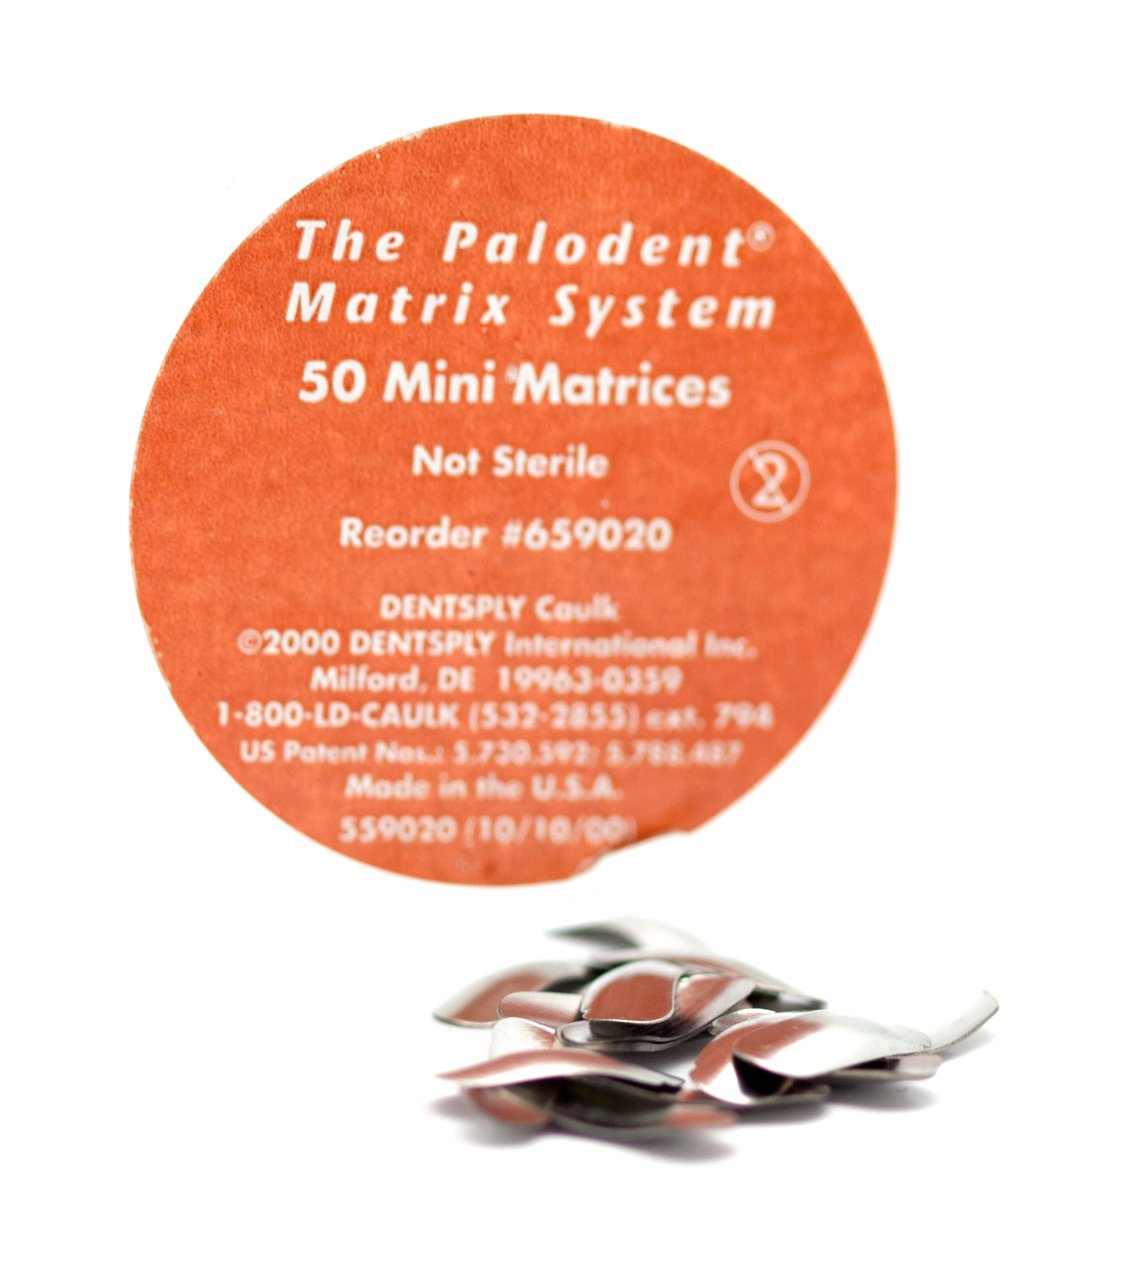 Dentsply 659020 Palodent Sectional Matrix System, Mini Matrices Refill (Pack of 50)